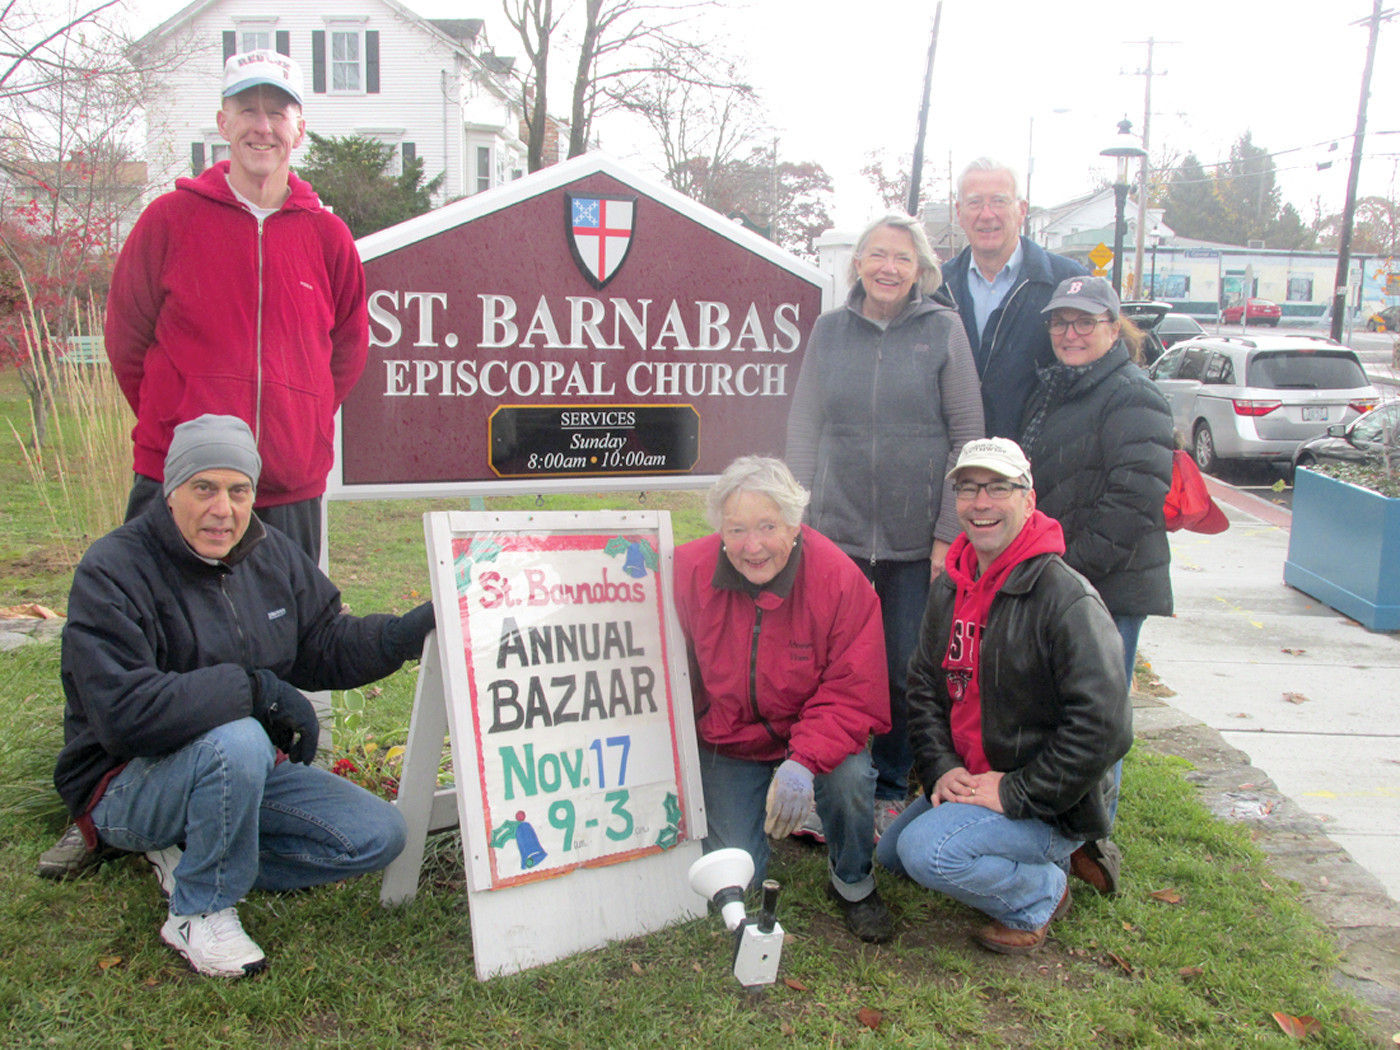 PROUD PARISHIONERS: Among the St. Barnabas Church family who have worked hard to present a great food and shopping experience during Saturday's annual Holiday Bazaar are: Stan Schofield, Eric Simonian, Tom Chadwick, Robin Beckwith, Bonnie Simonian, Diane Whitehead and Father Scott Lee.